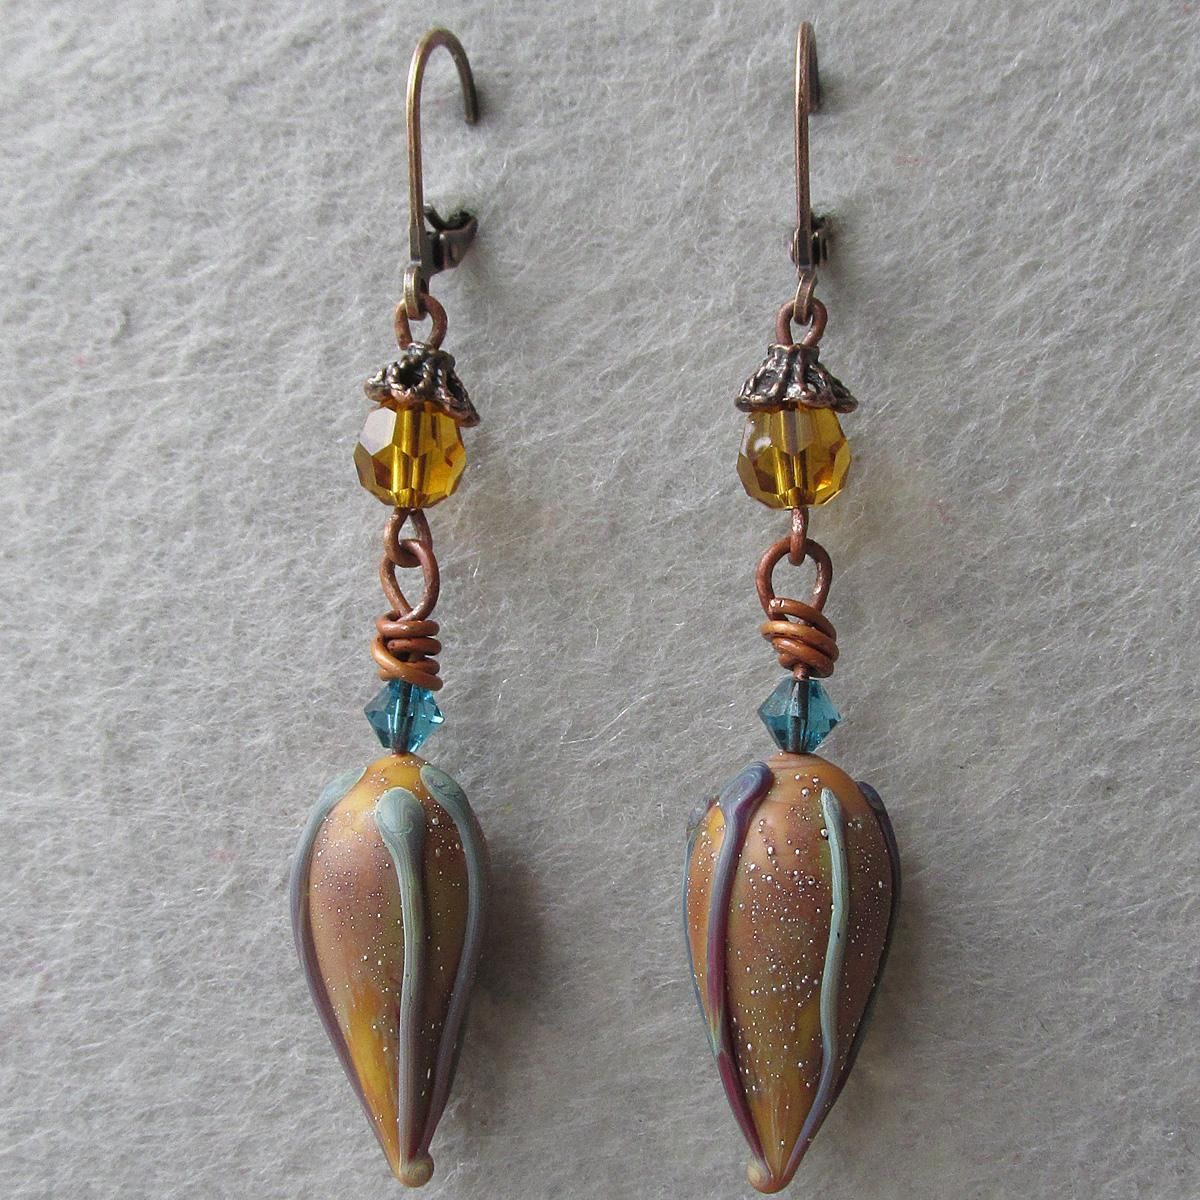 U201cMy Secret Gardenu201d Is One Room Within My Artisan Jewelry Shop Where The  Earrings Were Inspired By My Love Of Flowers, Plus My Love Of Art Glass. All